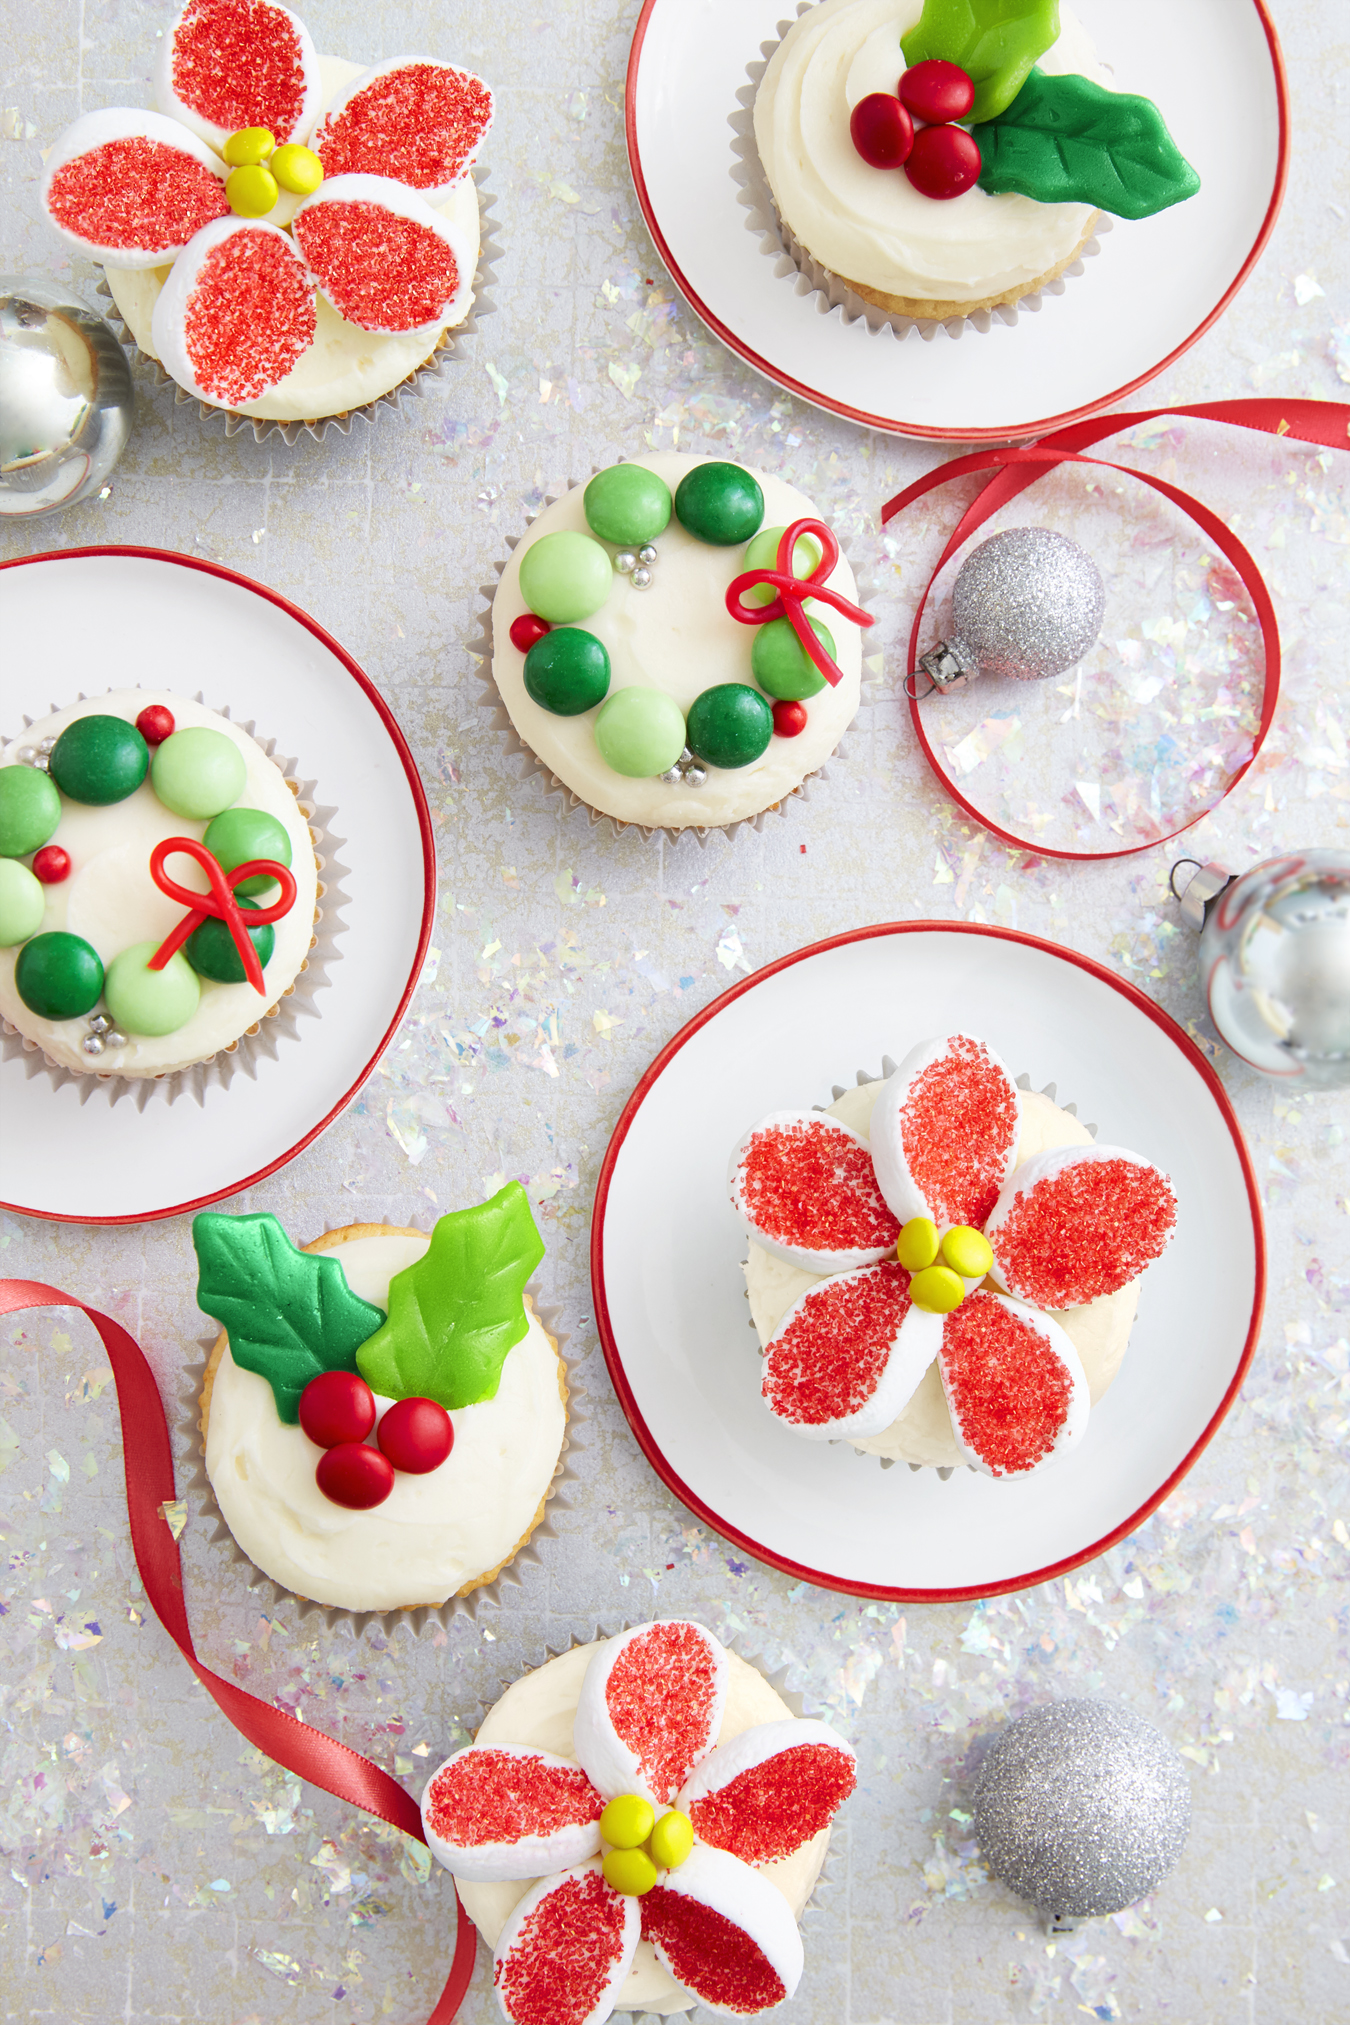 46 Easy Christmas Desserts - Best Recipes and Ideas for Christmas ...